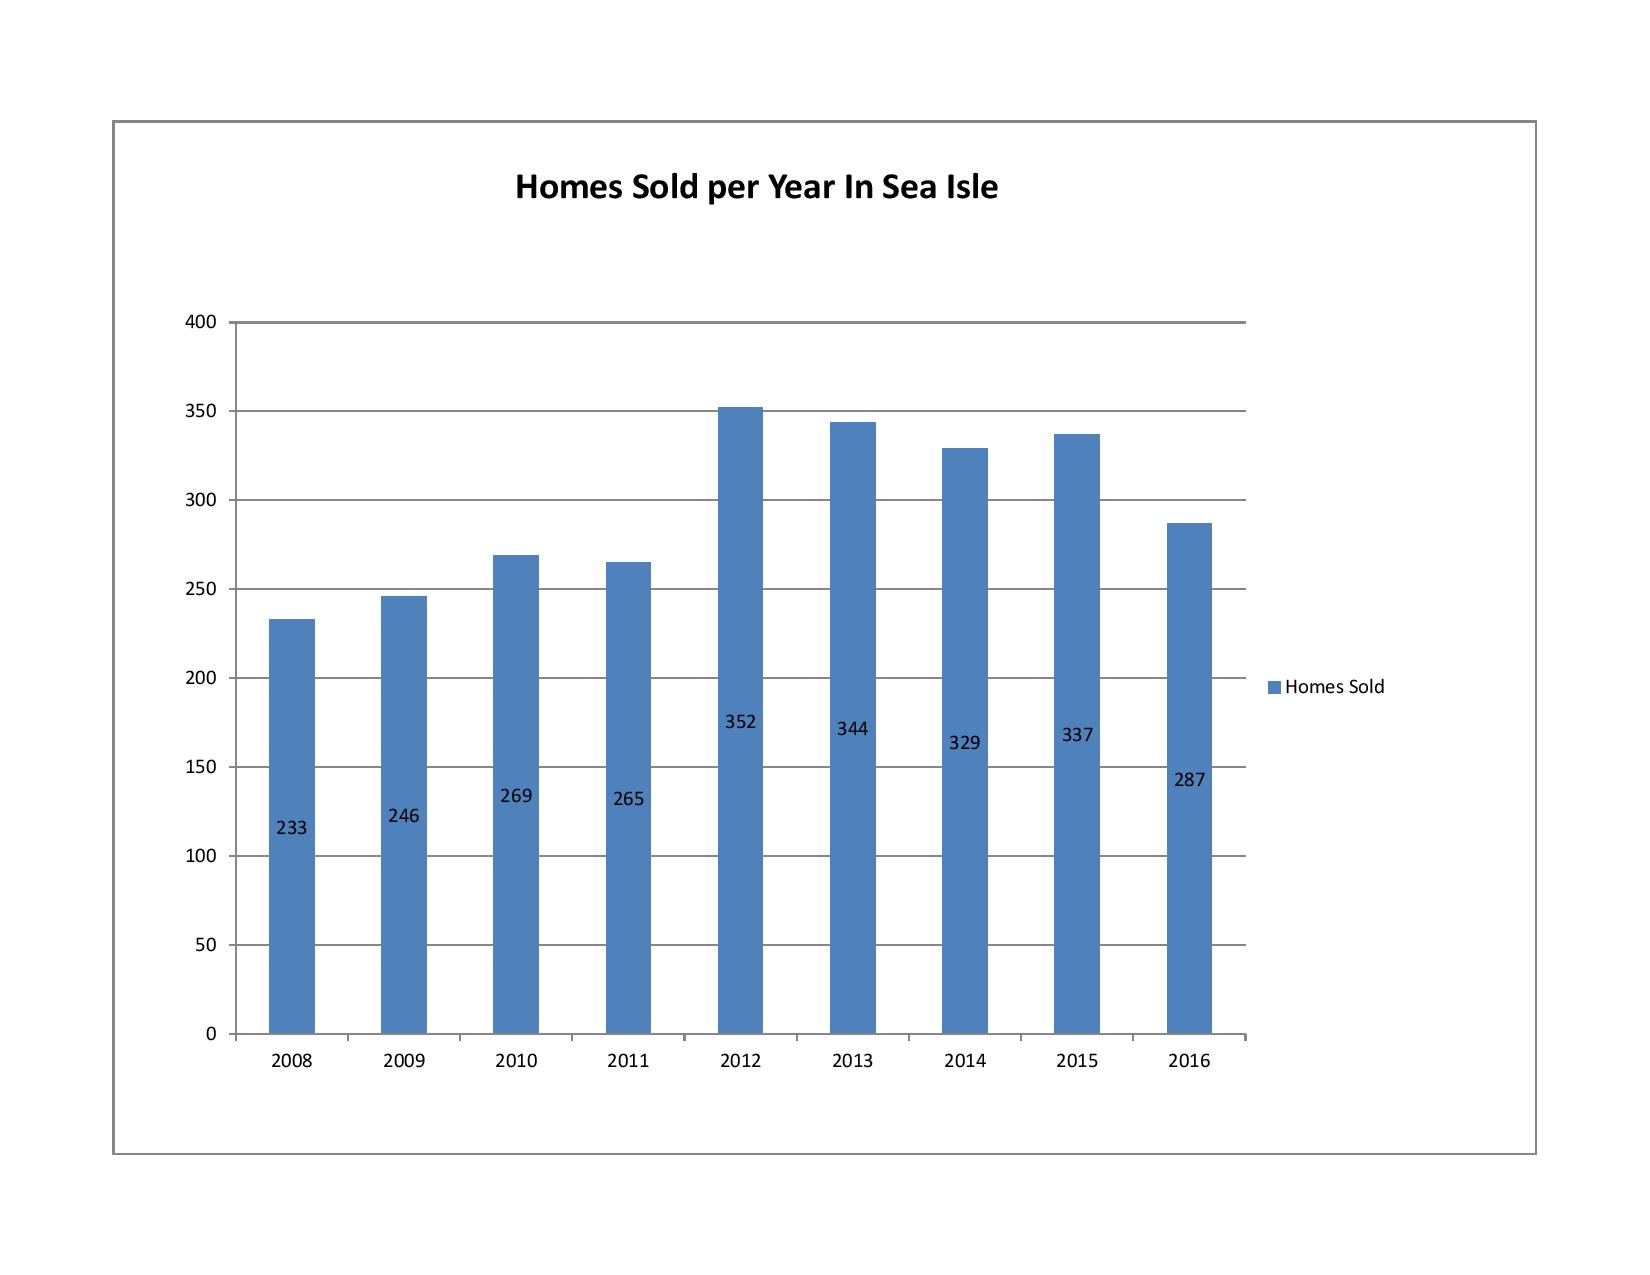 Homes Sold per Year in Sea Isle